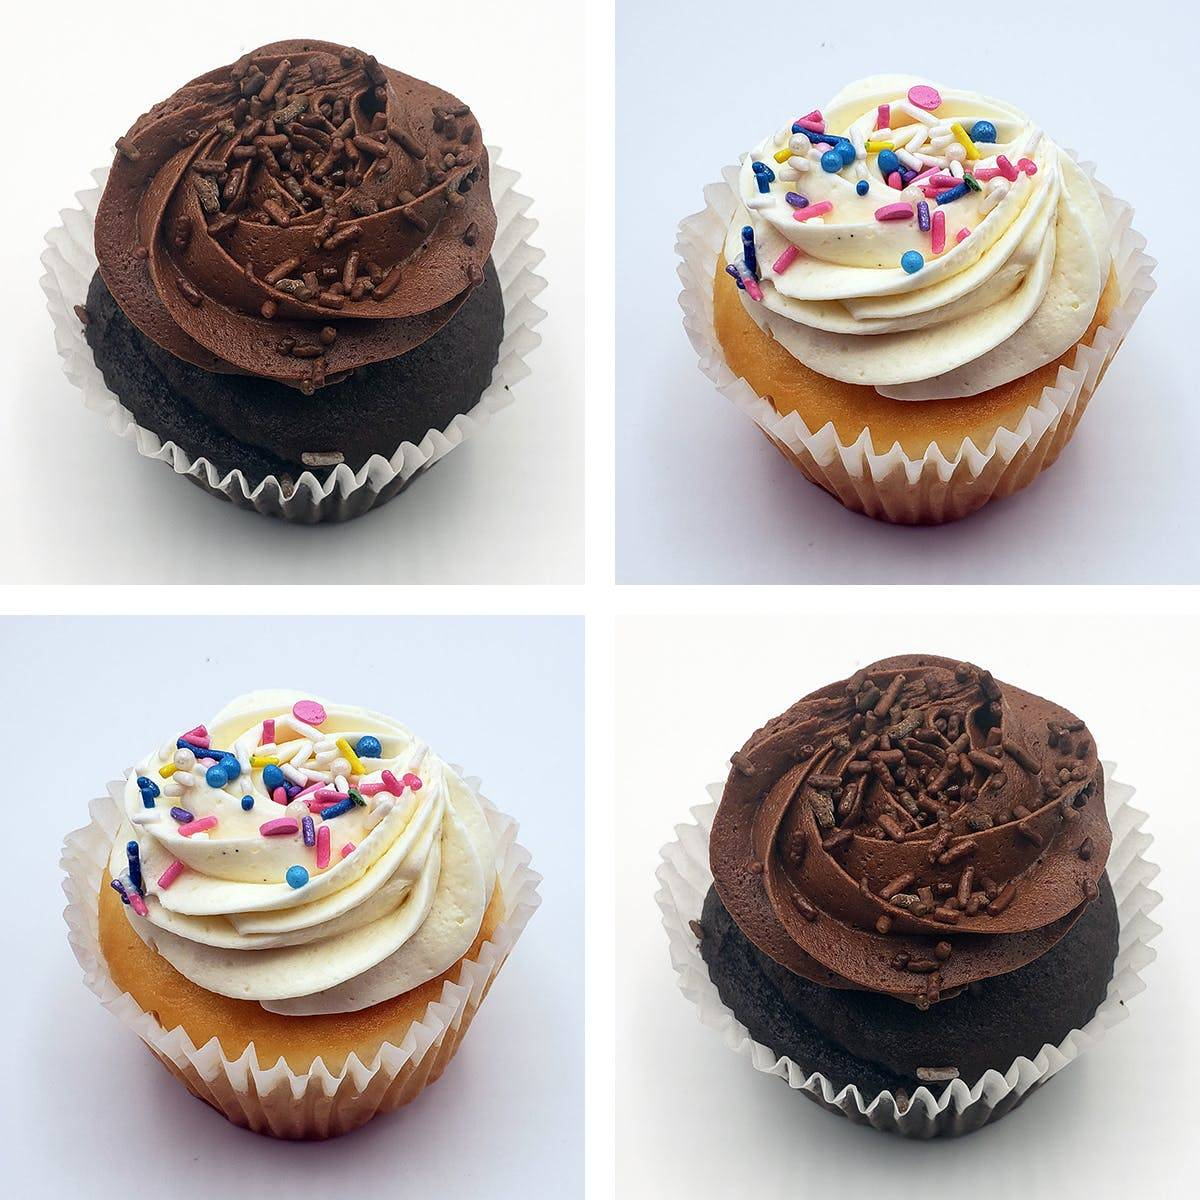 The Goddess and Grocer - Cupcakes Best Seller - 8 Pack